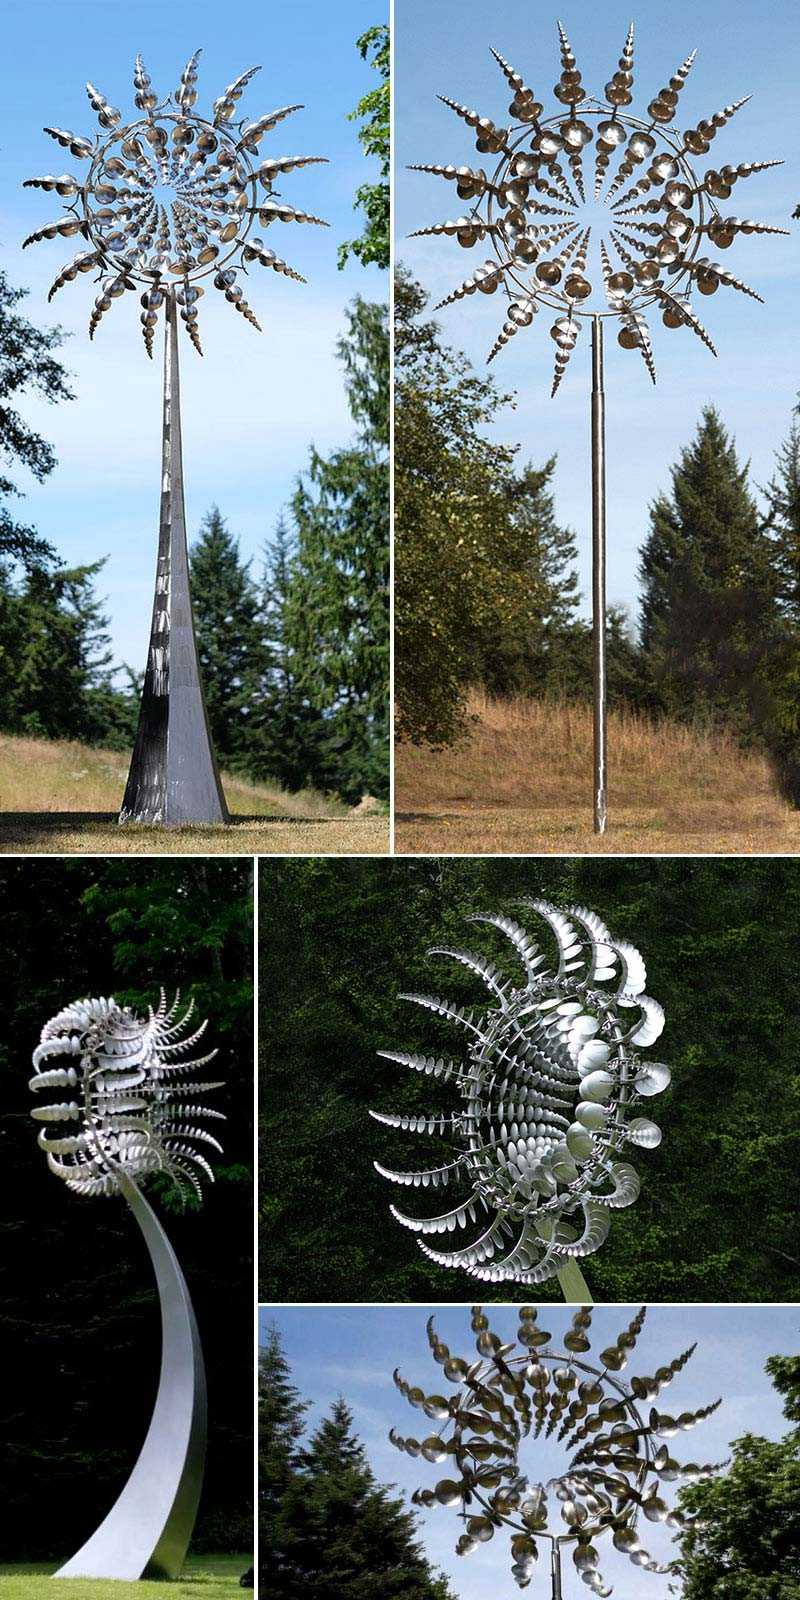 Outdoor stainless steel kinetic art sculpture by Anthony howe design details